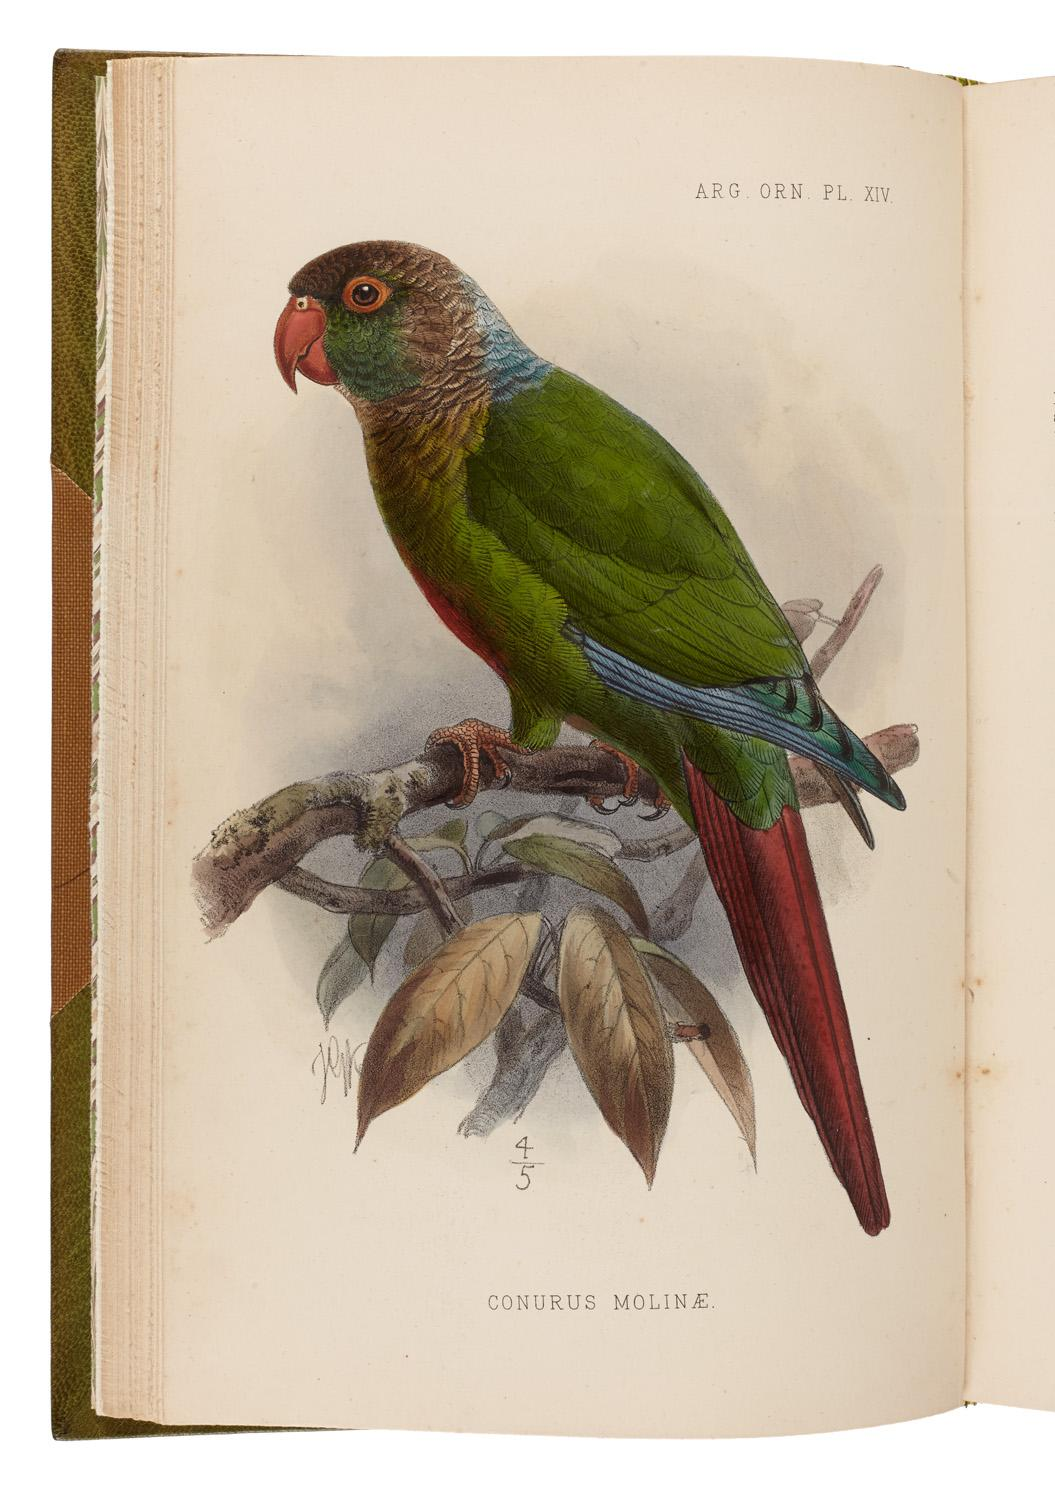 Argentine Ornithology. A descriptive catalogue of the birds of the Argentine Republic